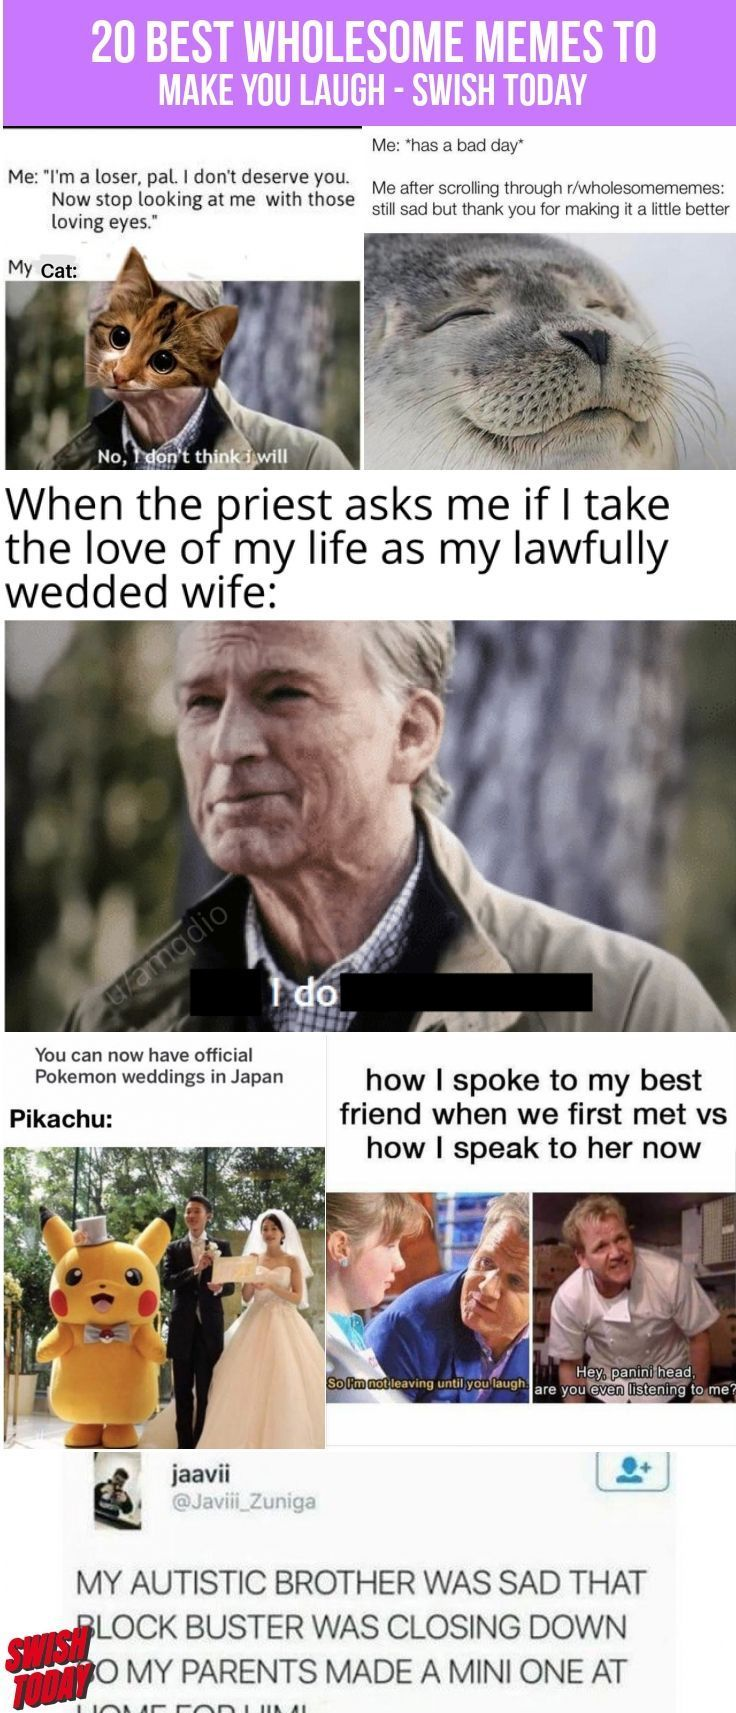 20 Best Wholesome Memes To Make You Laugh Memes Funnypictures Fun Humor Laughter Rofl Lol Wtf Epic Fun Jokes Swishtoday Wholesome Memes Memes Laugh